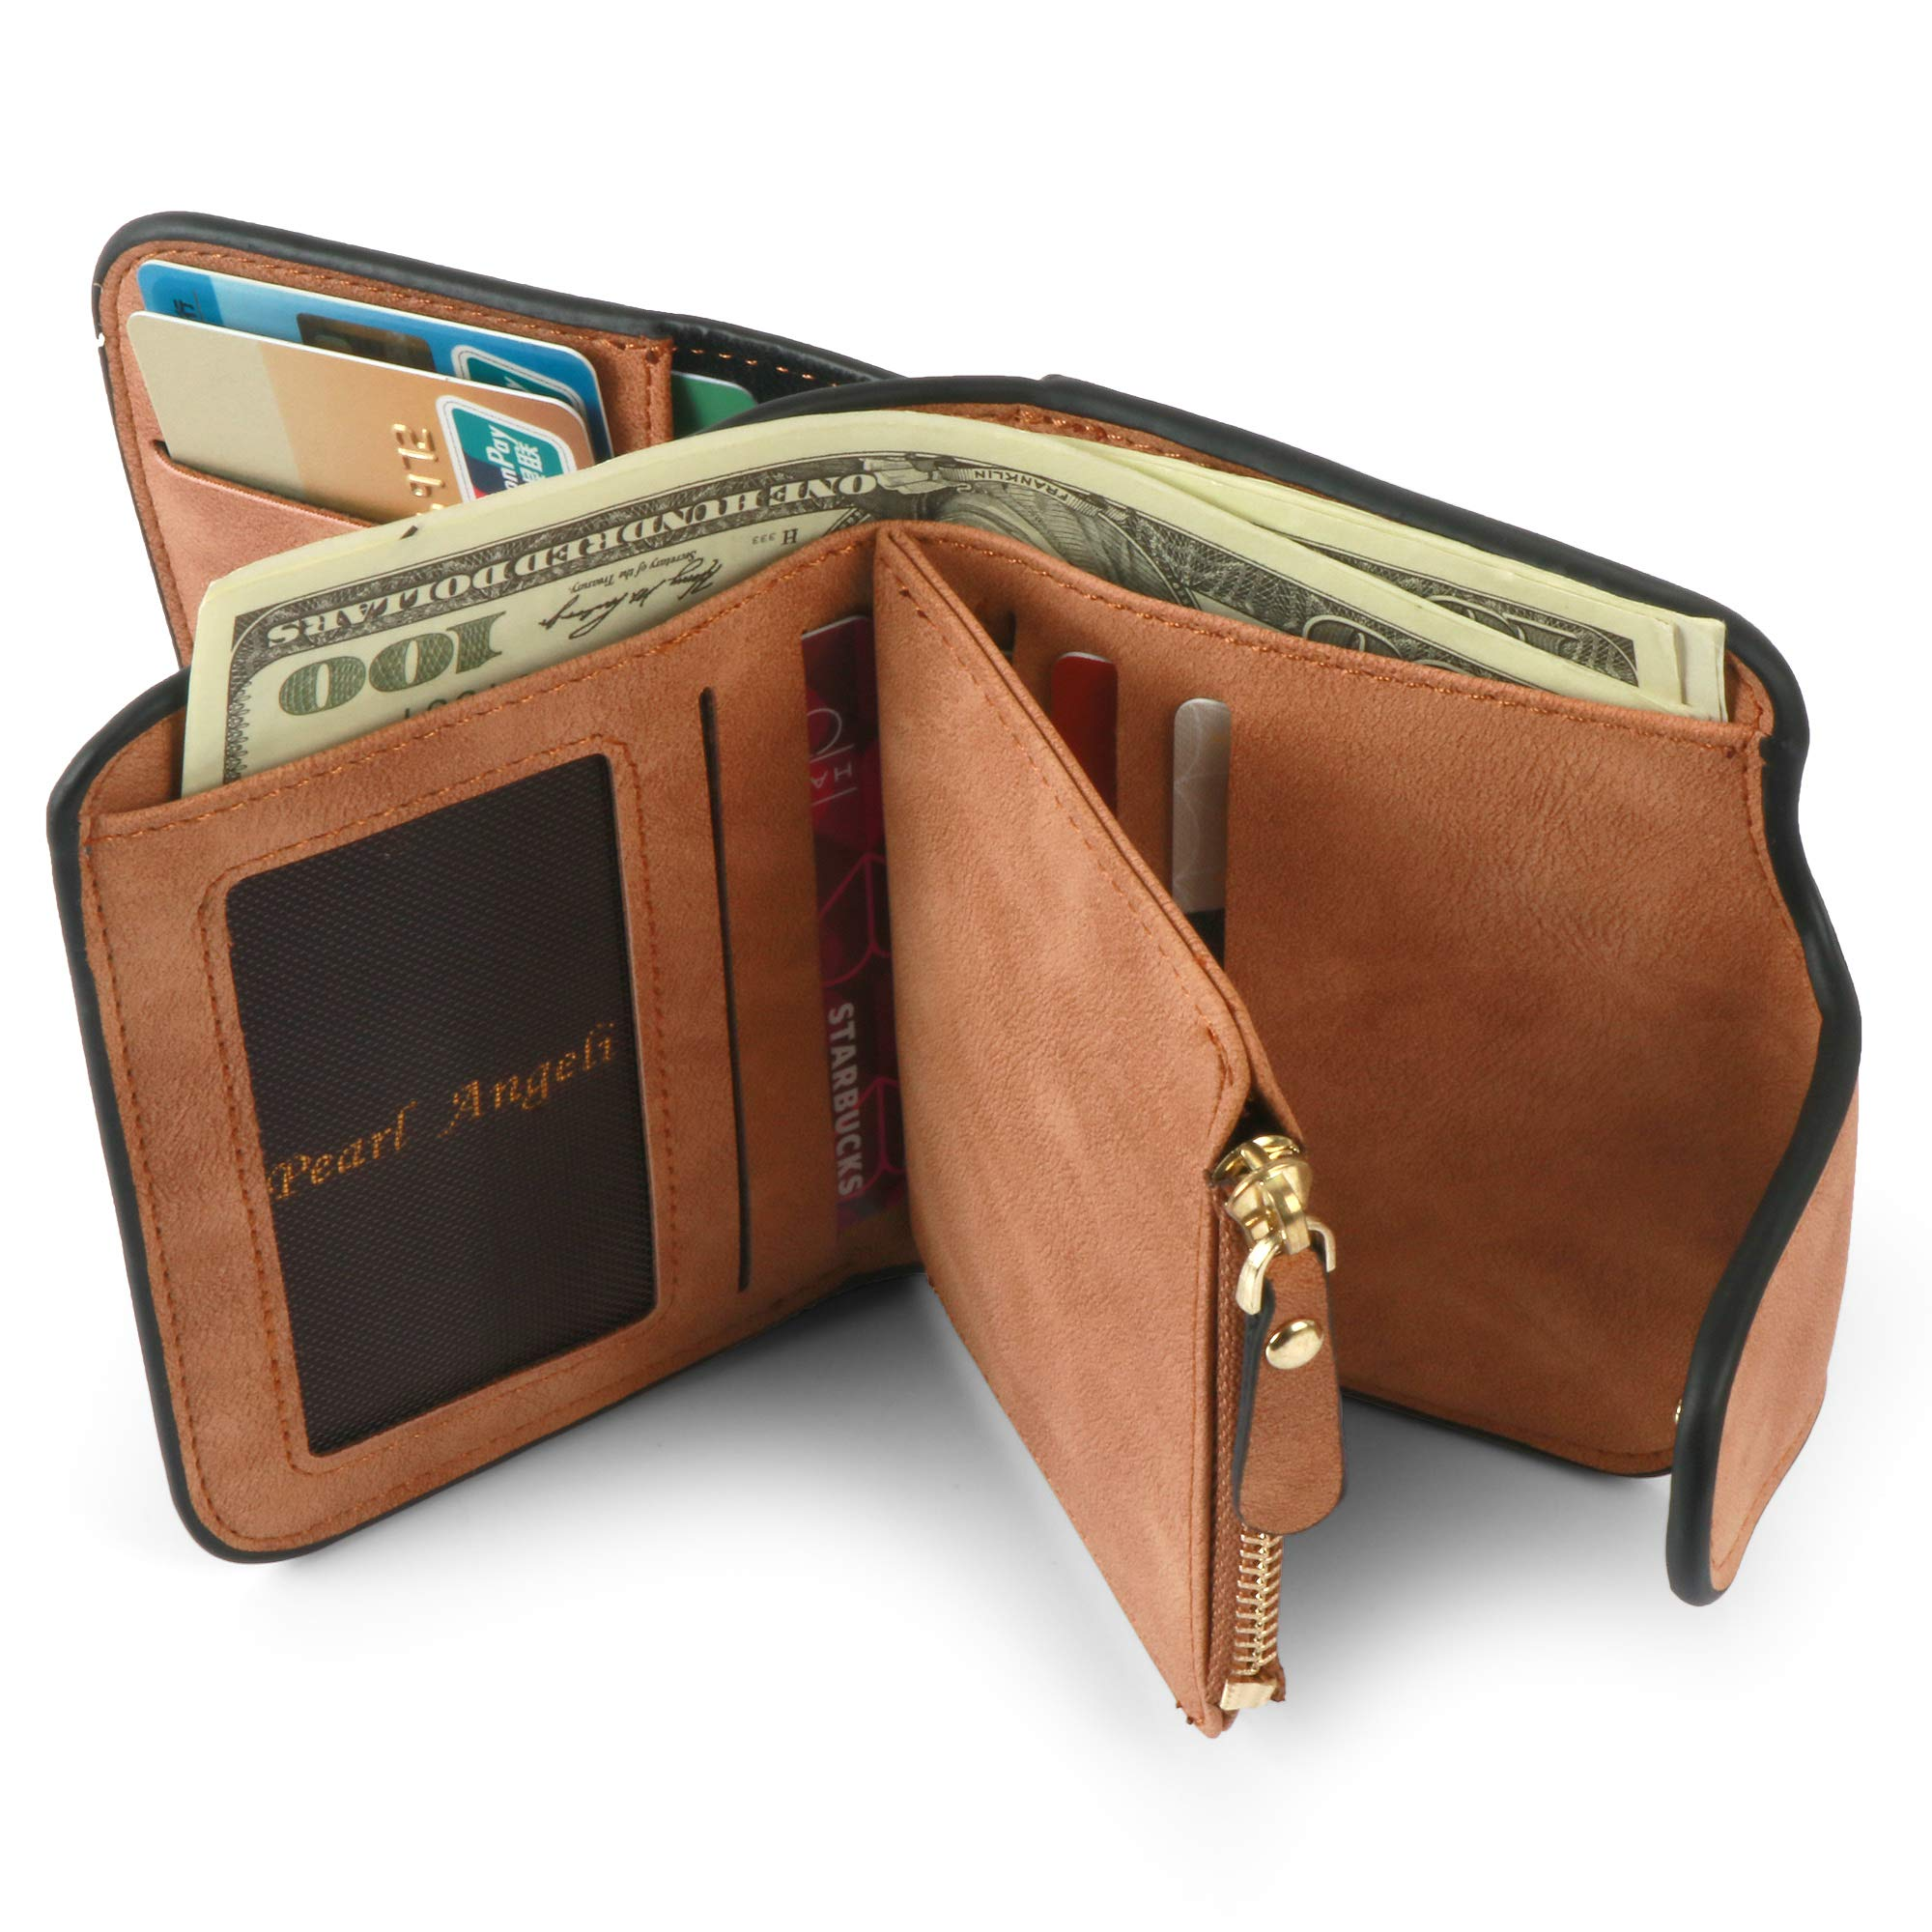 Women Purse Fashion Pu Leather Cute Clutch Small Ladies Credit Card Holder Wallet Organizer For Female Color - Brown by Pearl Angeli (Image #6)